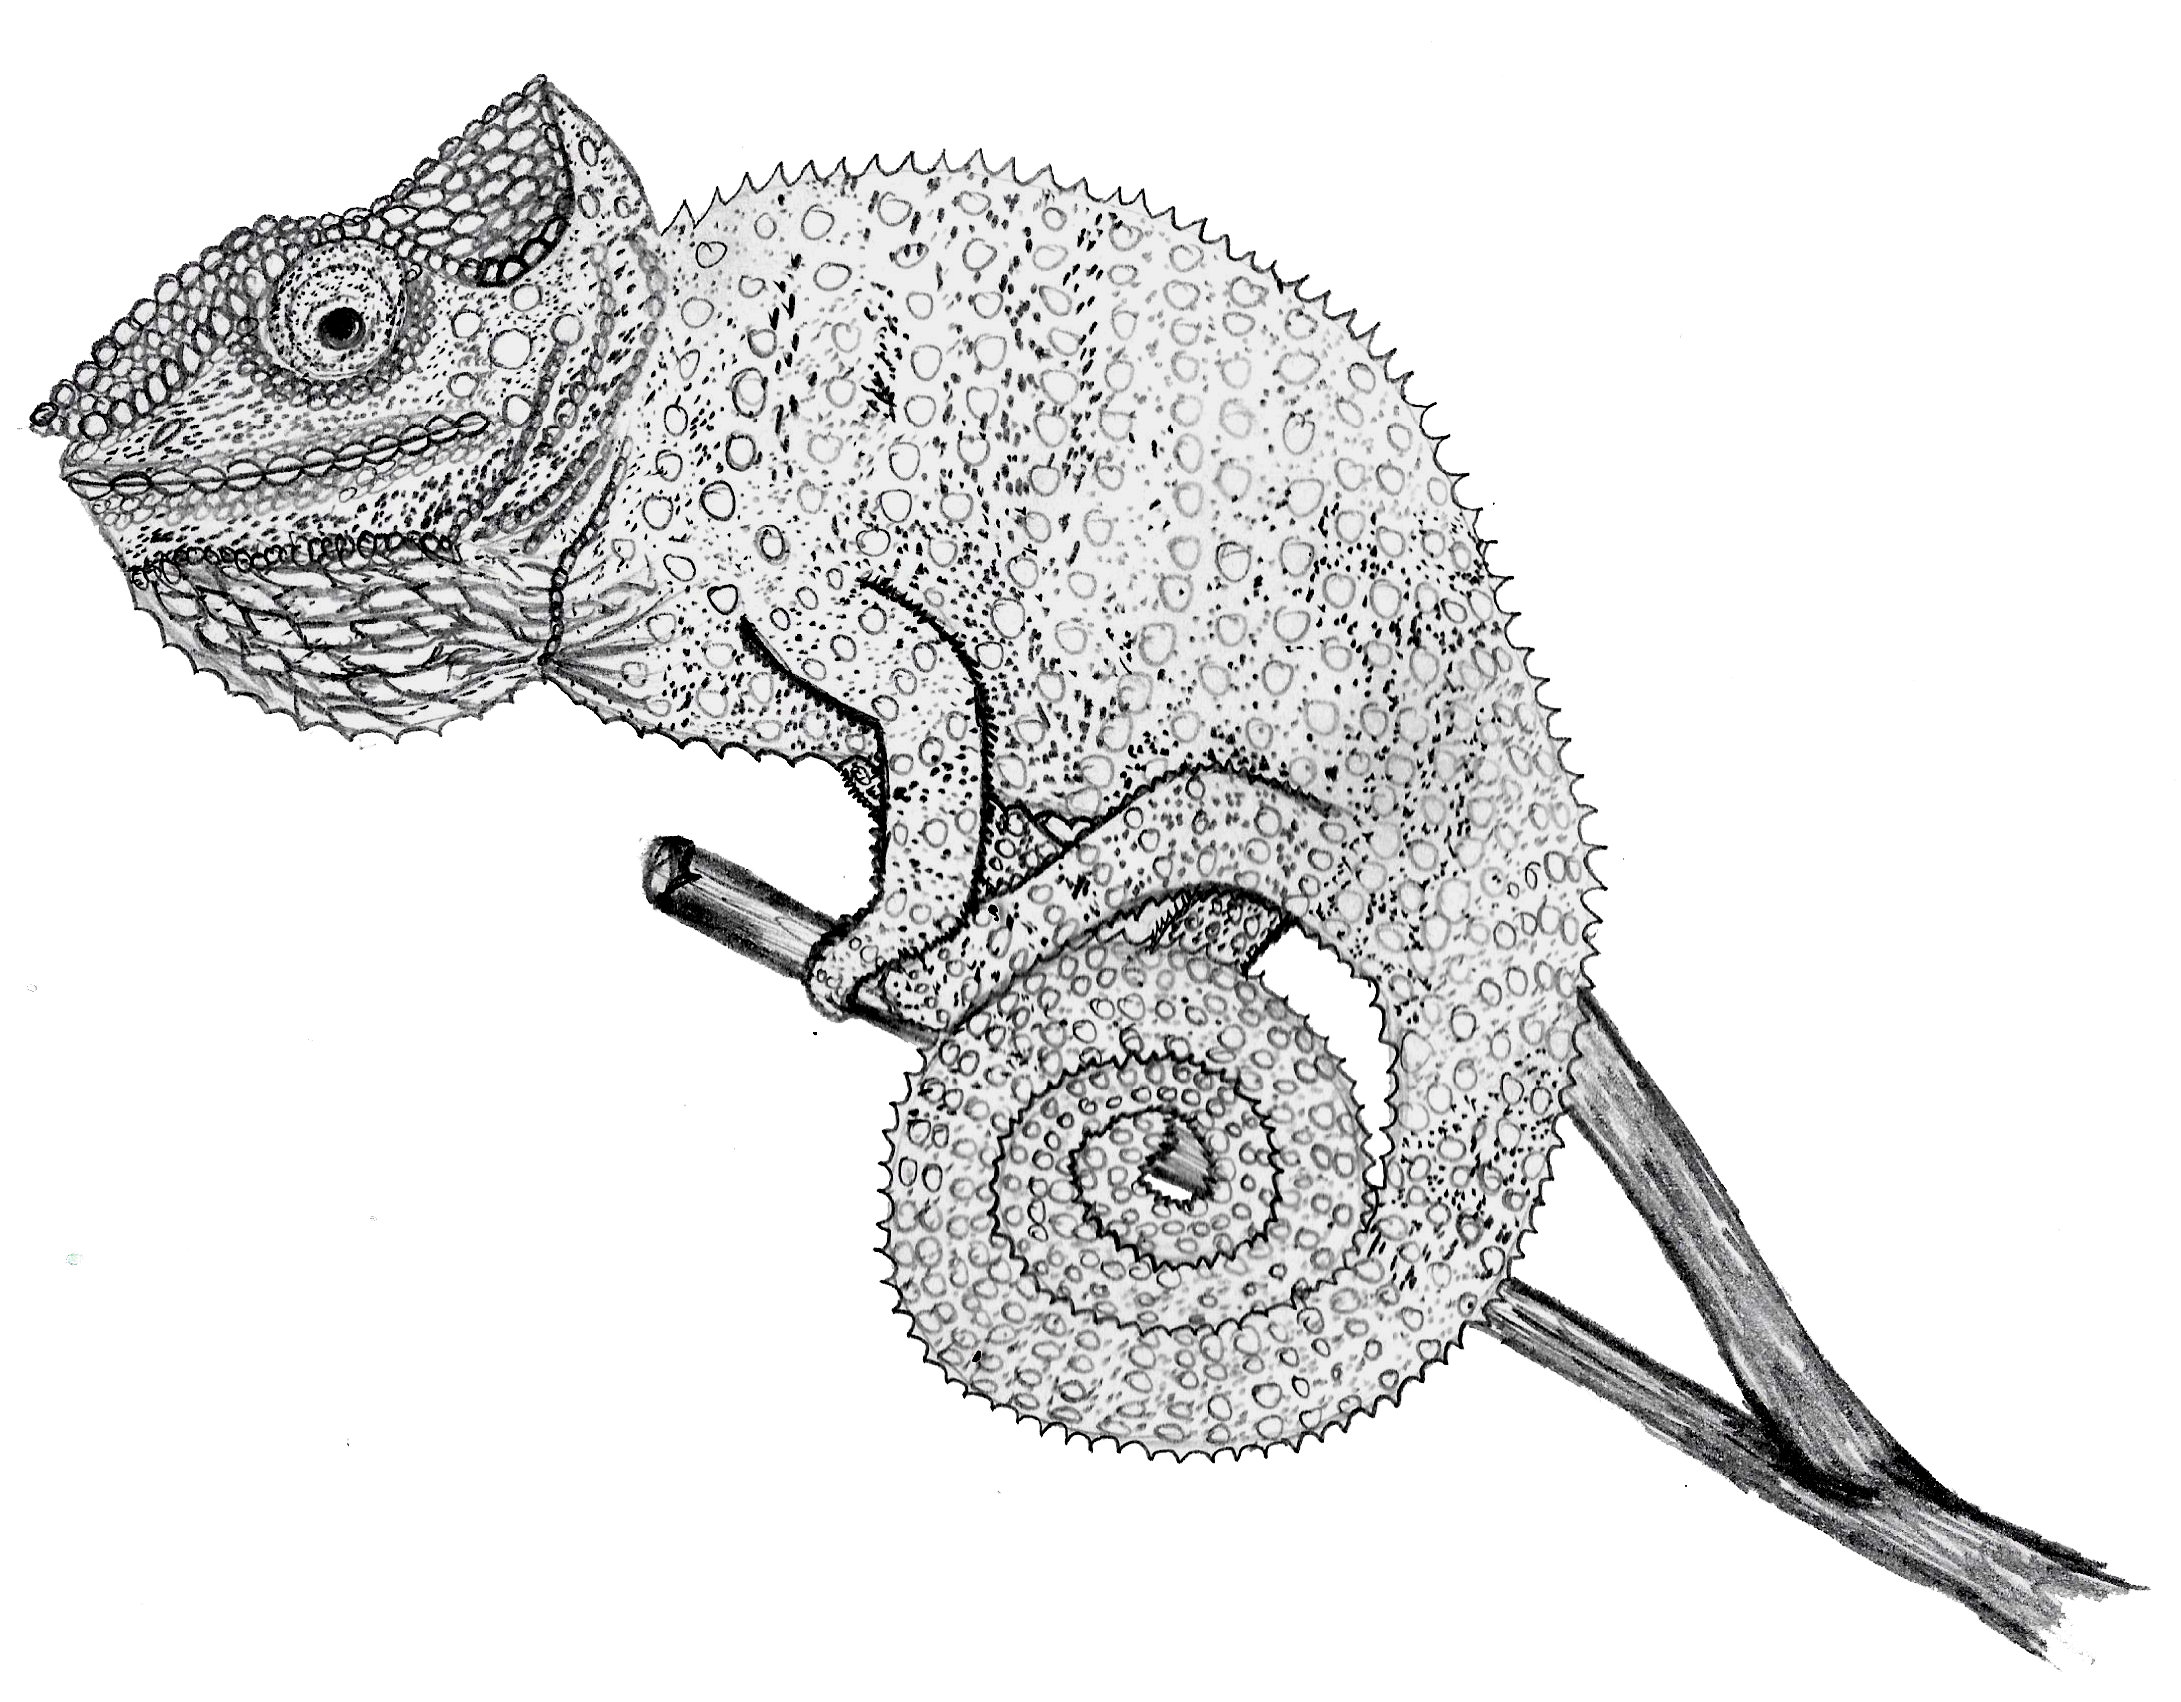 chameleon drawing chameleon geometric drawing size a4 printable download drawing chameleon